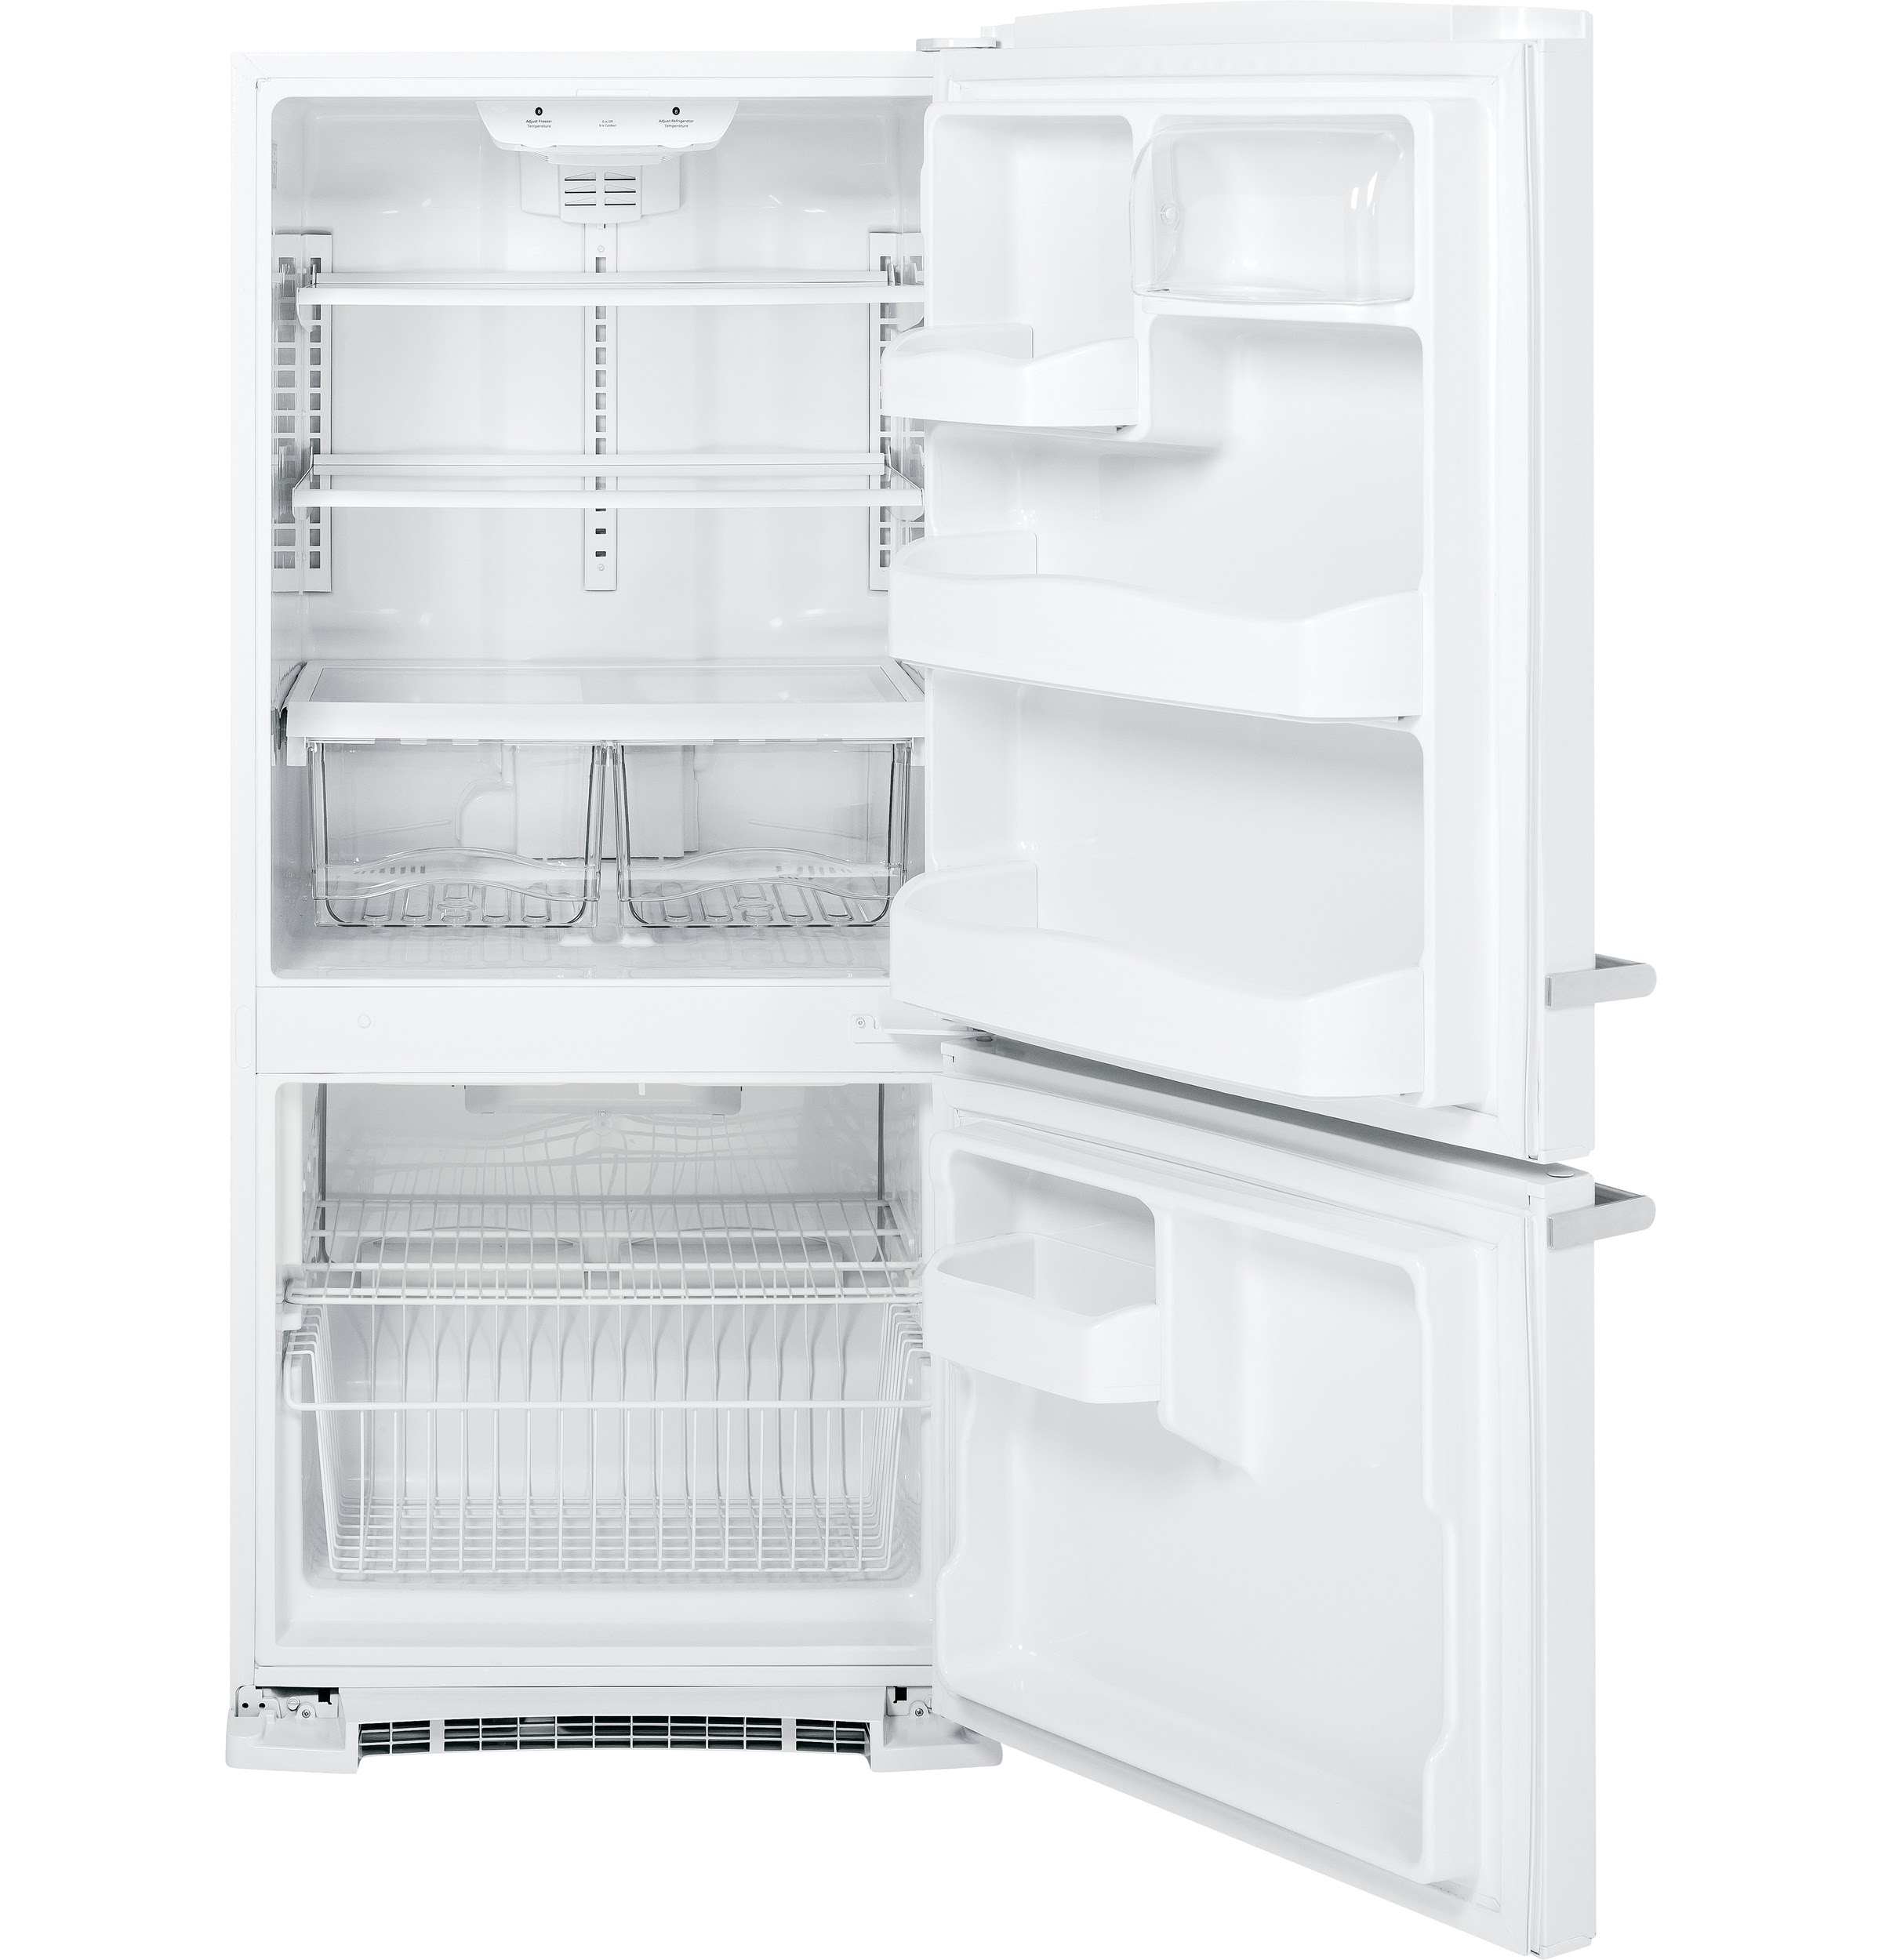 GE Artistry™ Series ENERGY STAR 20 3 Cu Ft Bottom Freezer